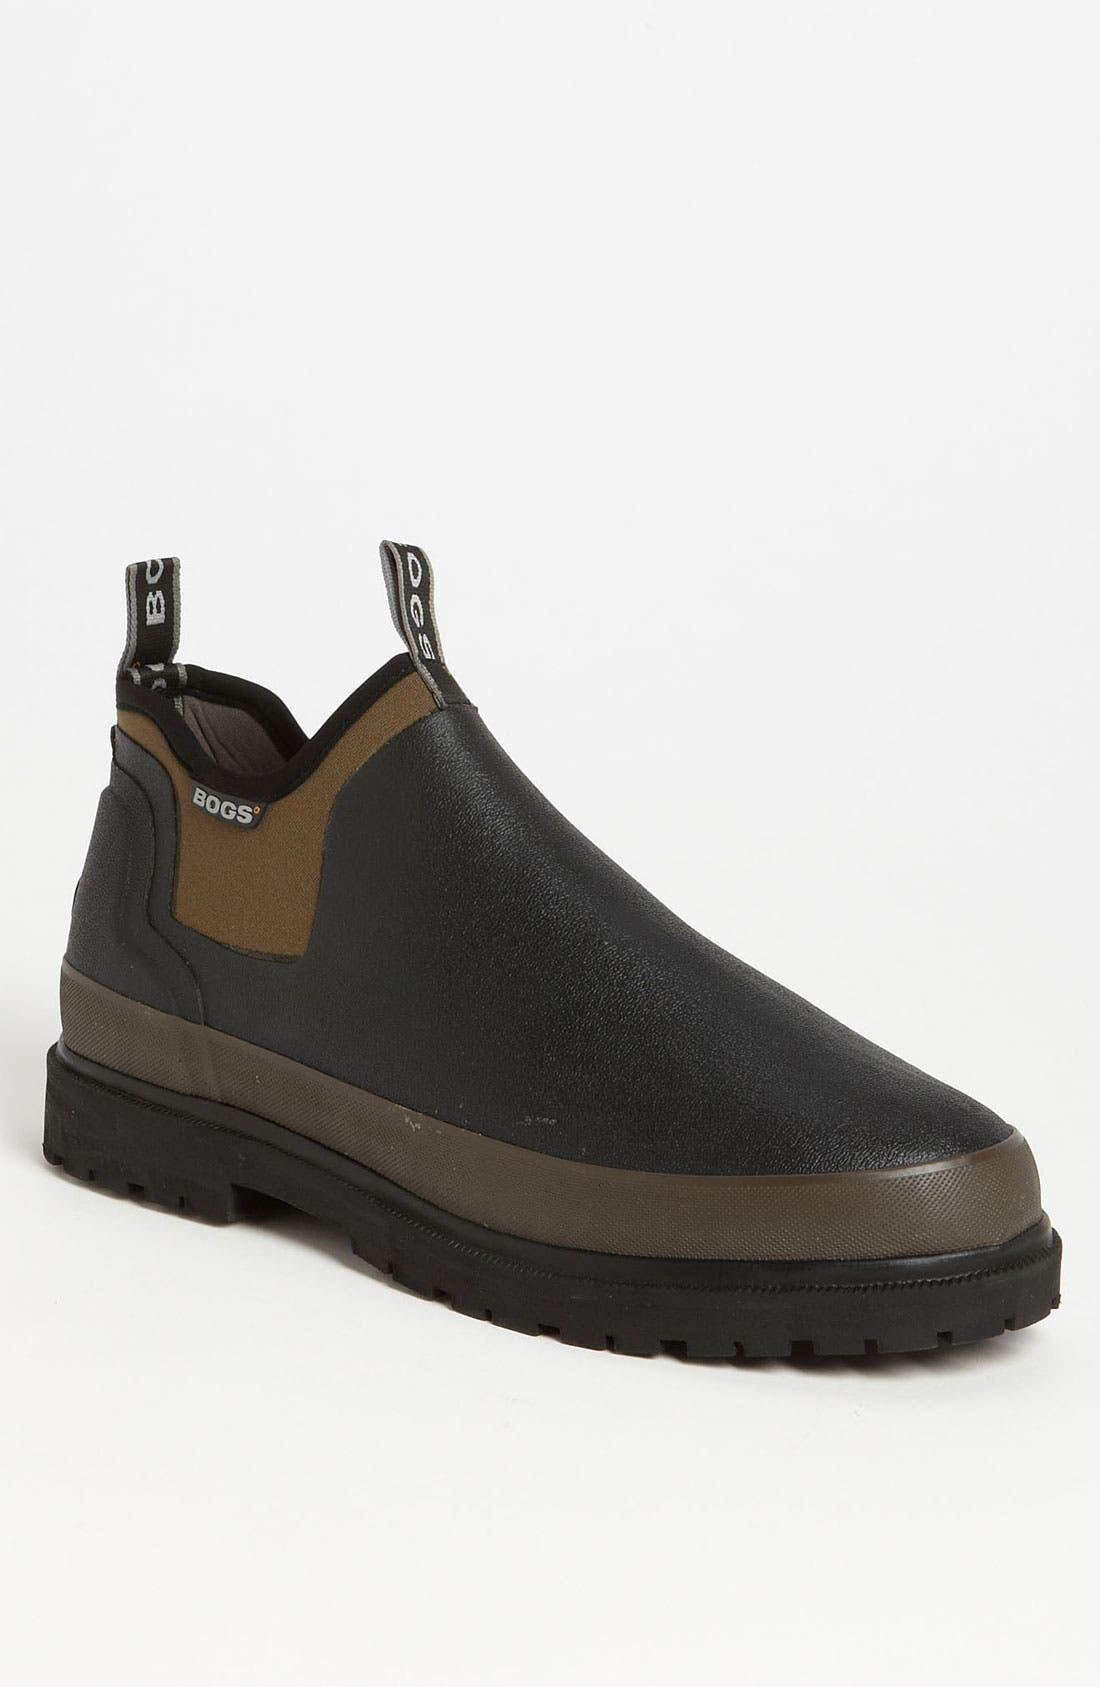 Main Image - Bogs 'Tillamook Bay' Rain Boot   (Men)